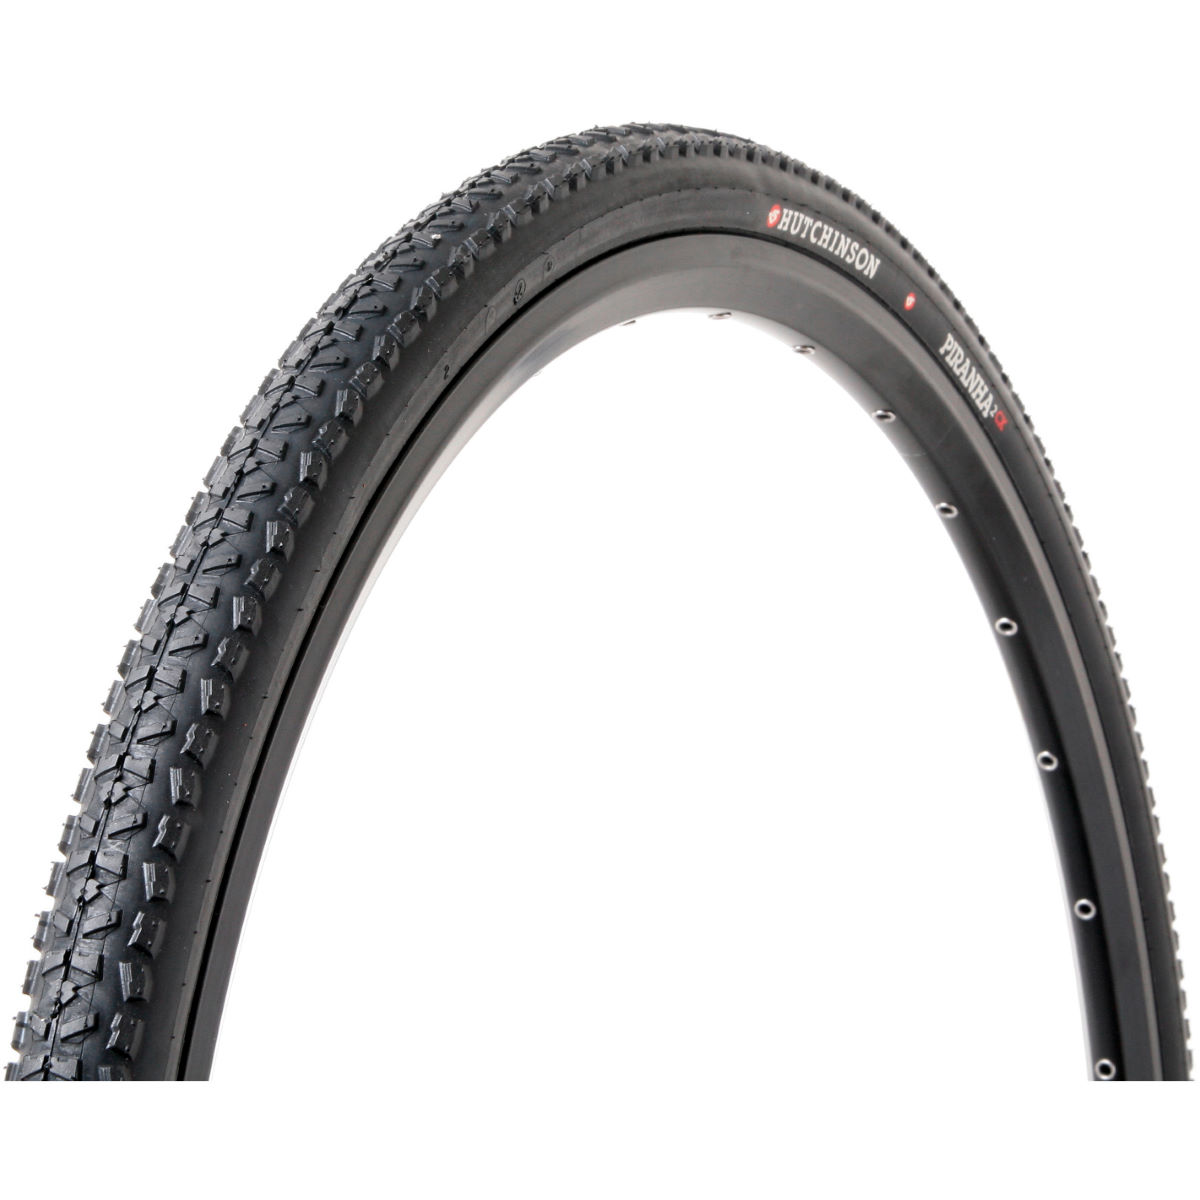 Pneu de cyclo-cross Hutchinson Piranha 2 Tubeless (souple) - 34c 700c